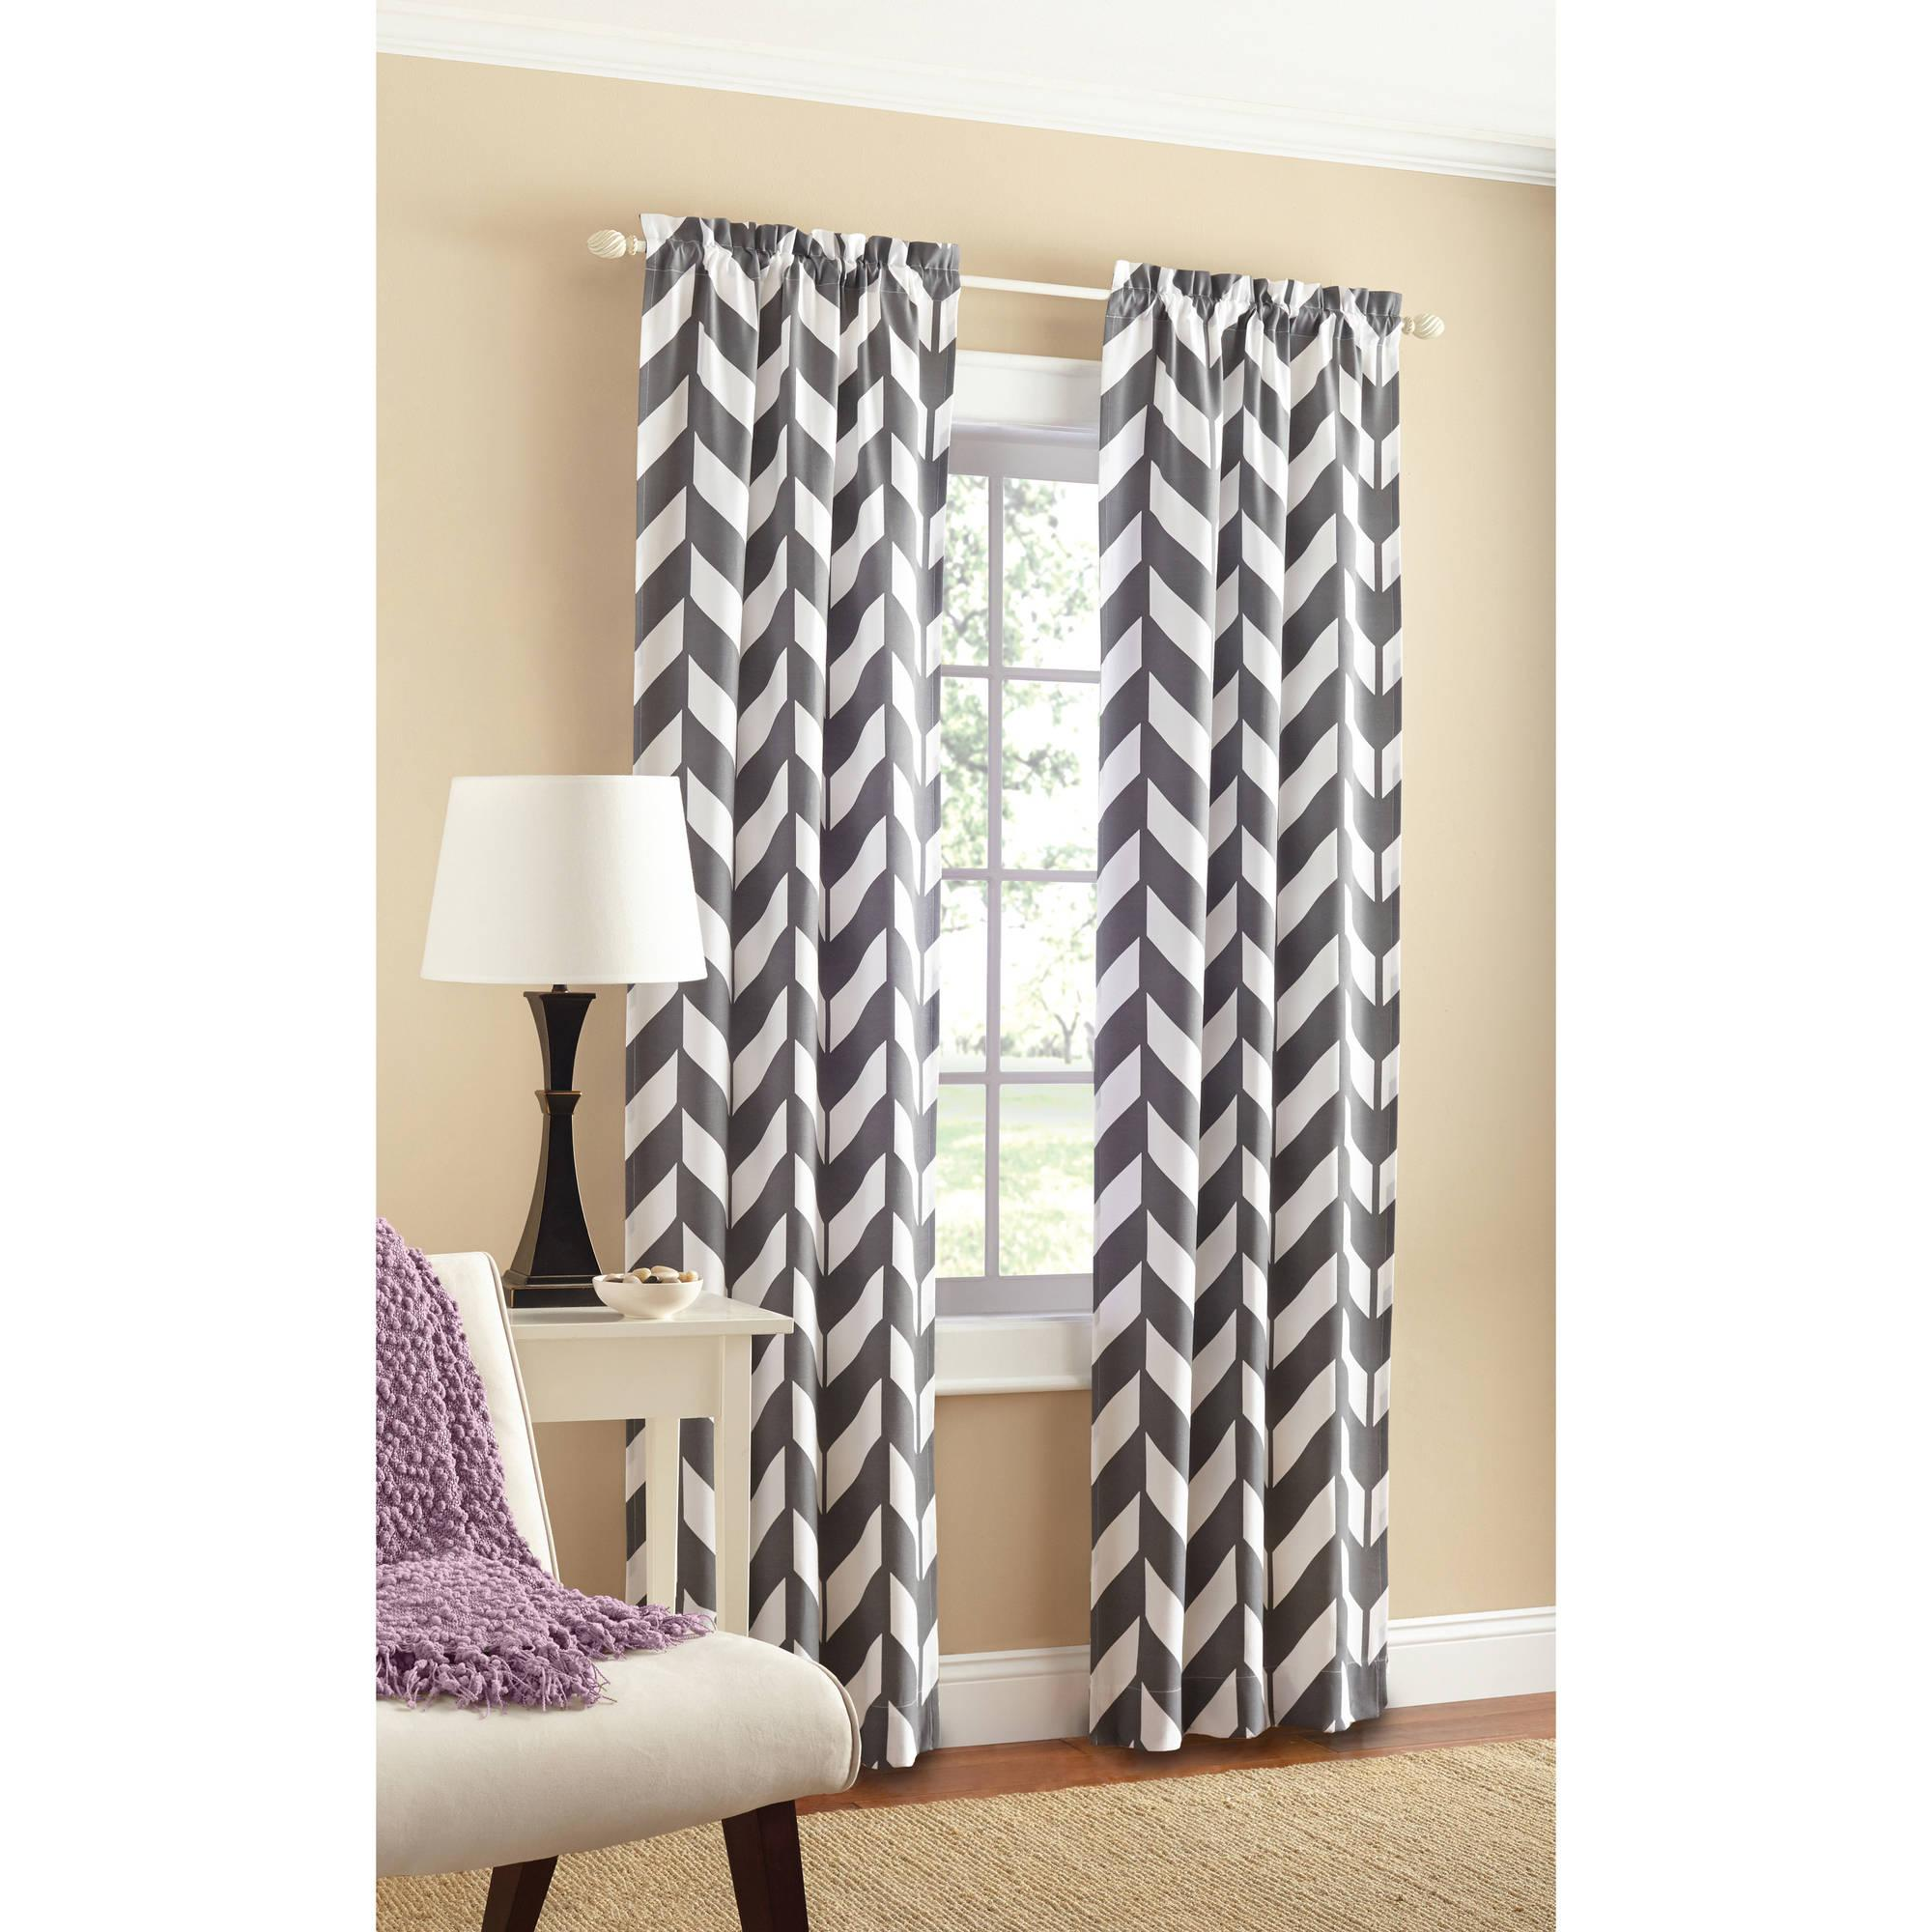 Blackout Drapery Panels | Affordable Blackout Curtains | Cheap Blackout Curtains